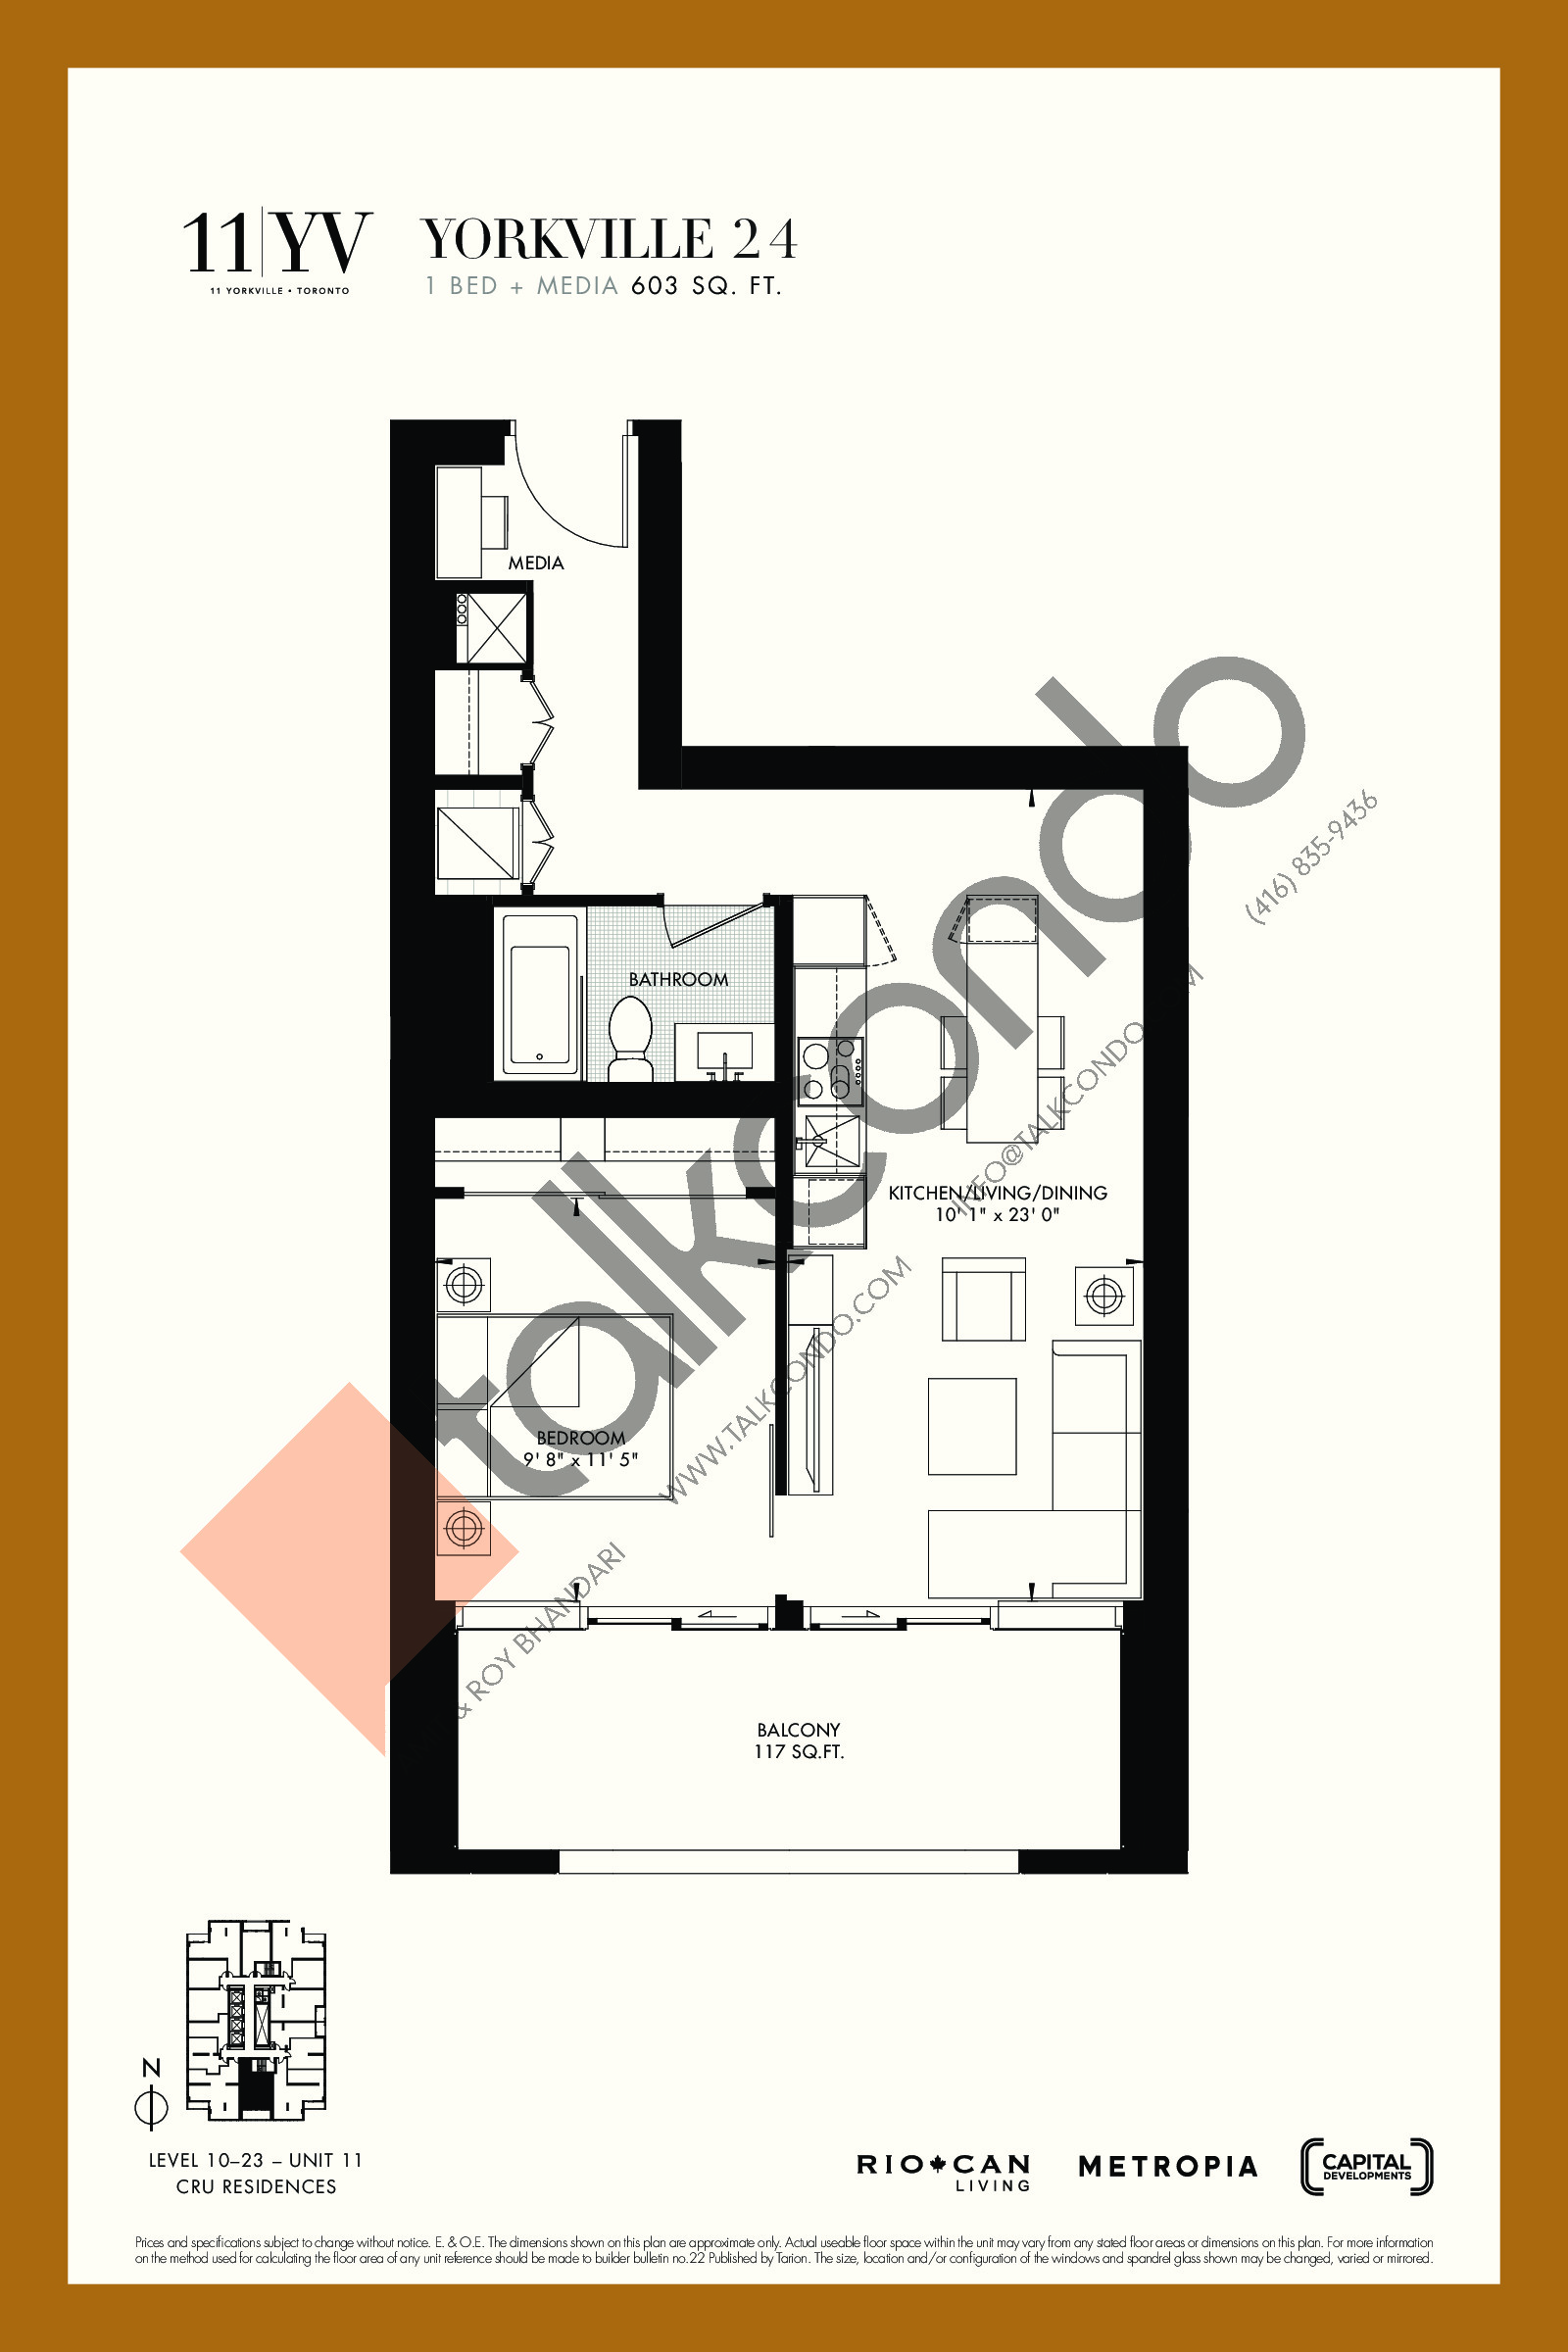 Yorkville 24 Floor Plan at 11YV Condos - 603 sq.ft